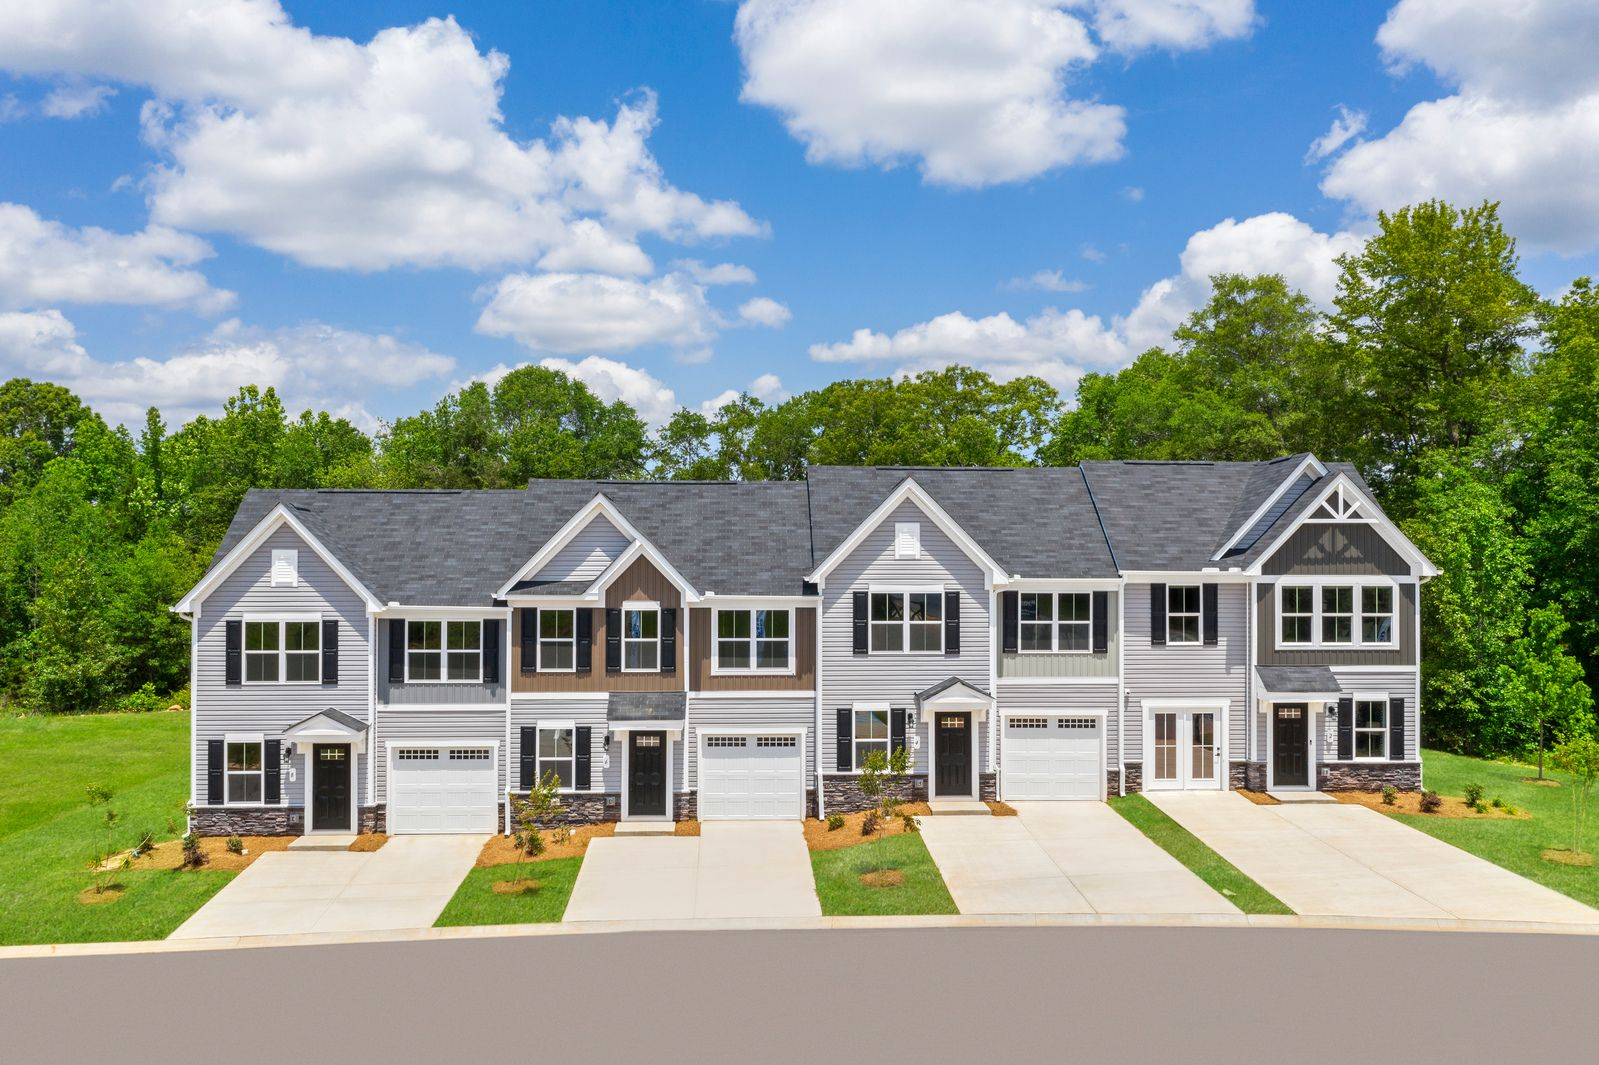 LAST CHANCE to own in Fountain Inn's fastest-selling community